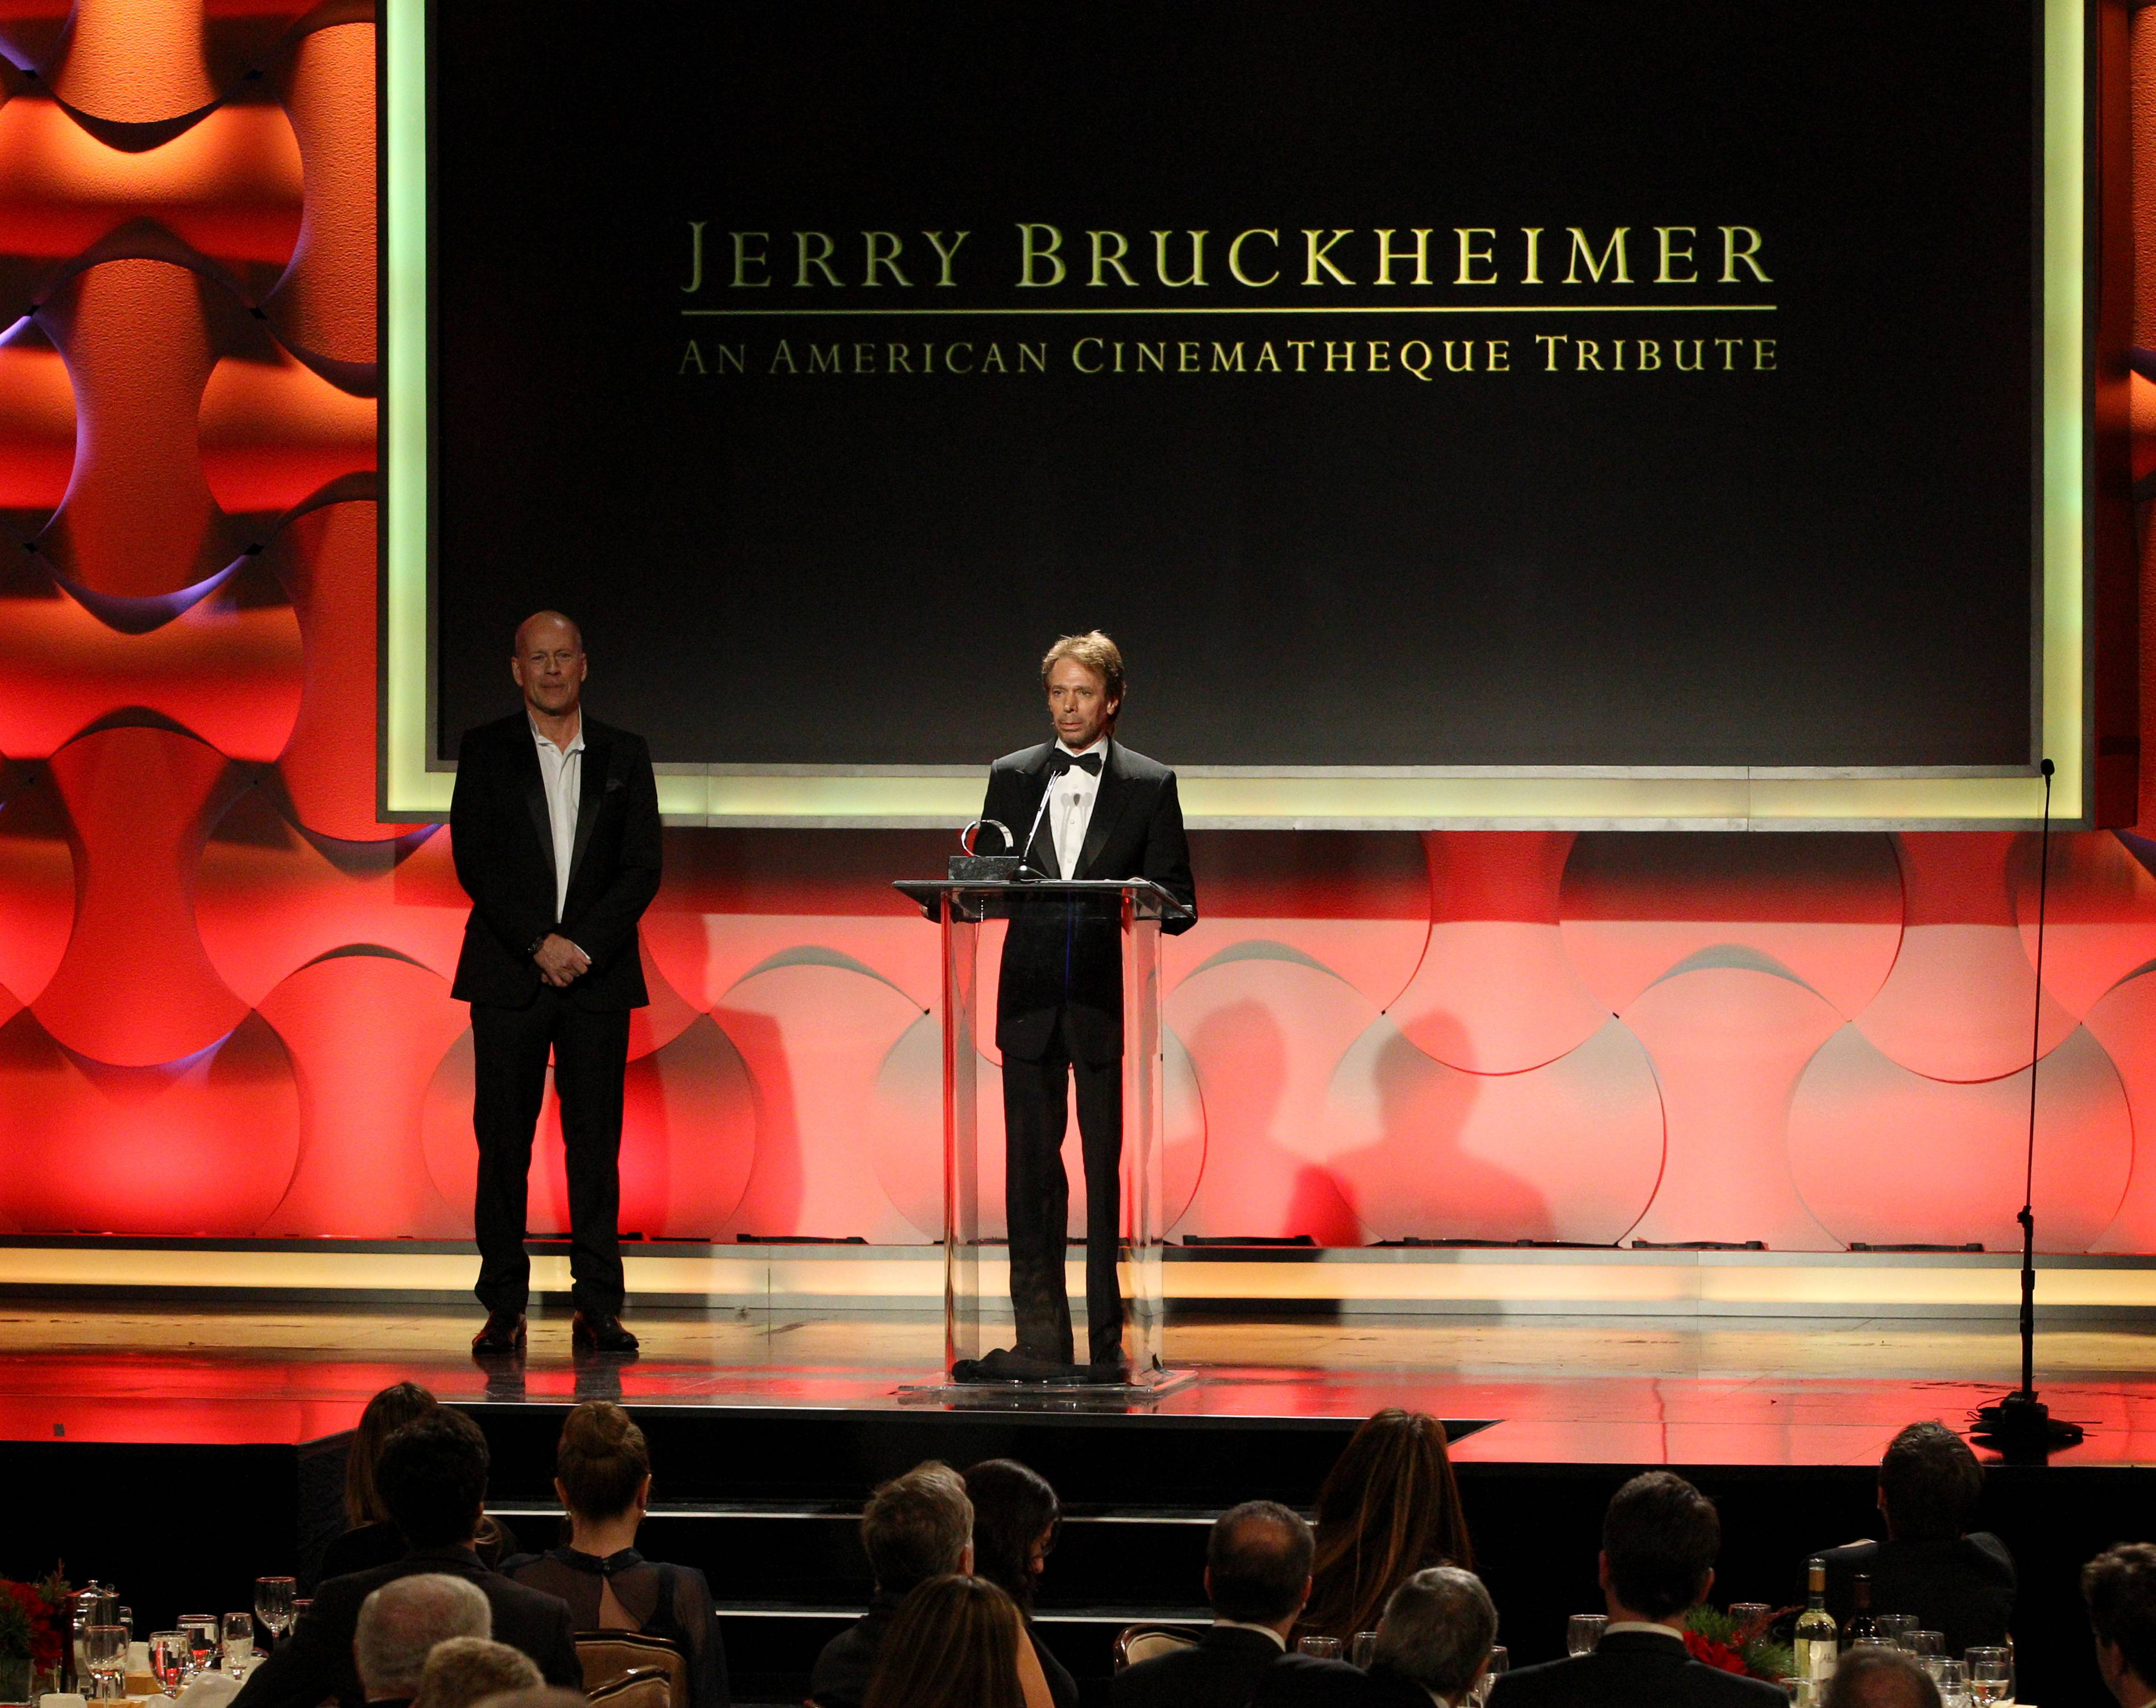 Bruce Willis, Jerry Bruckheimer